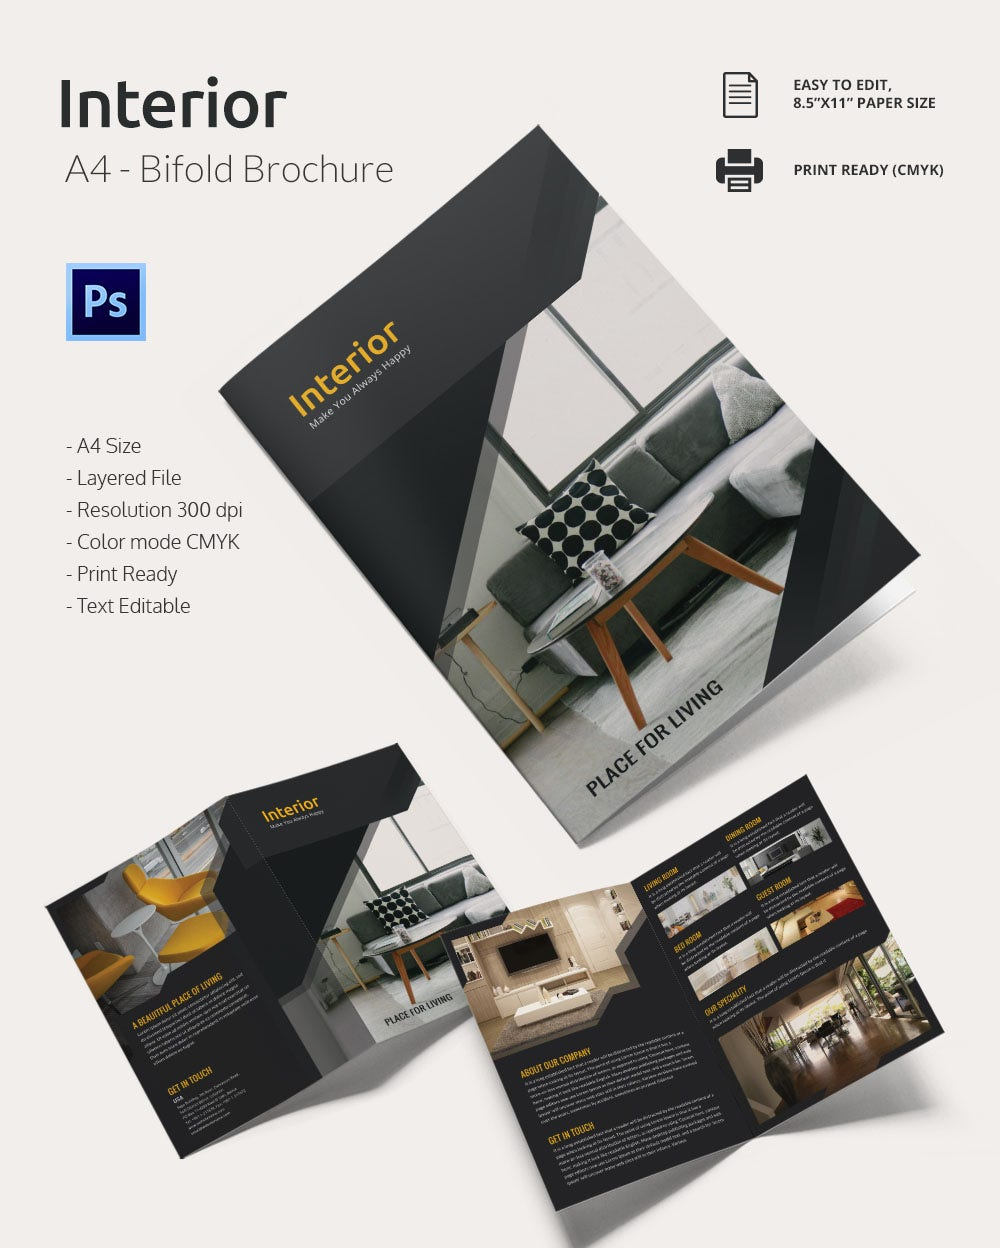 17 interior decoration brochure free word psd pdf for Interior design styles types pdf